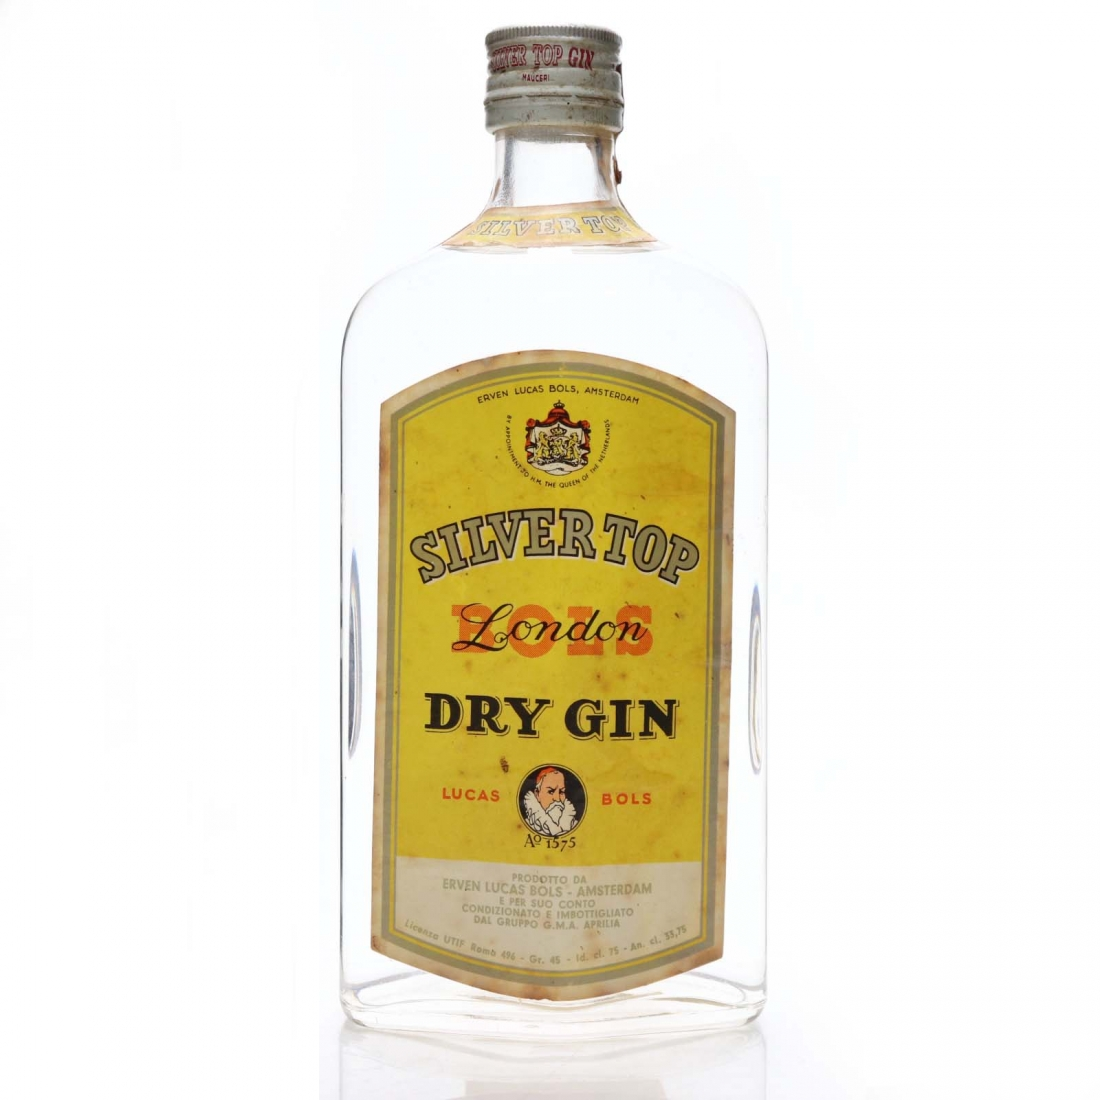 Bols Silver Top London Dry Gin 1970s